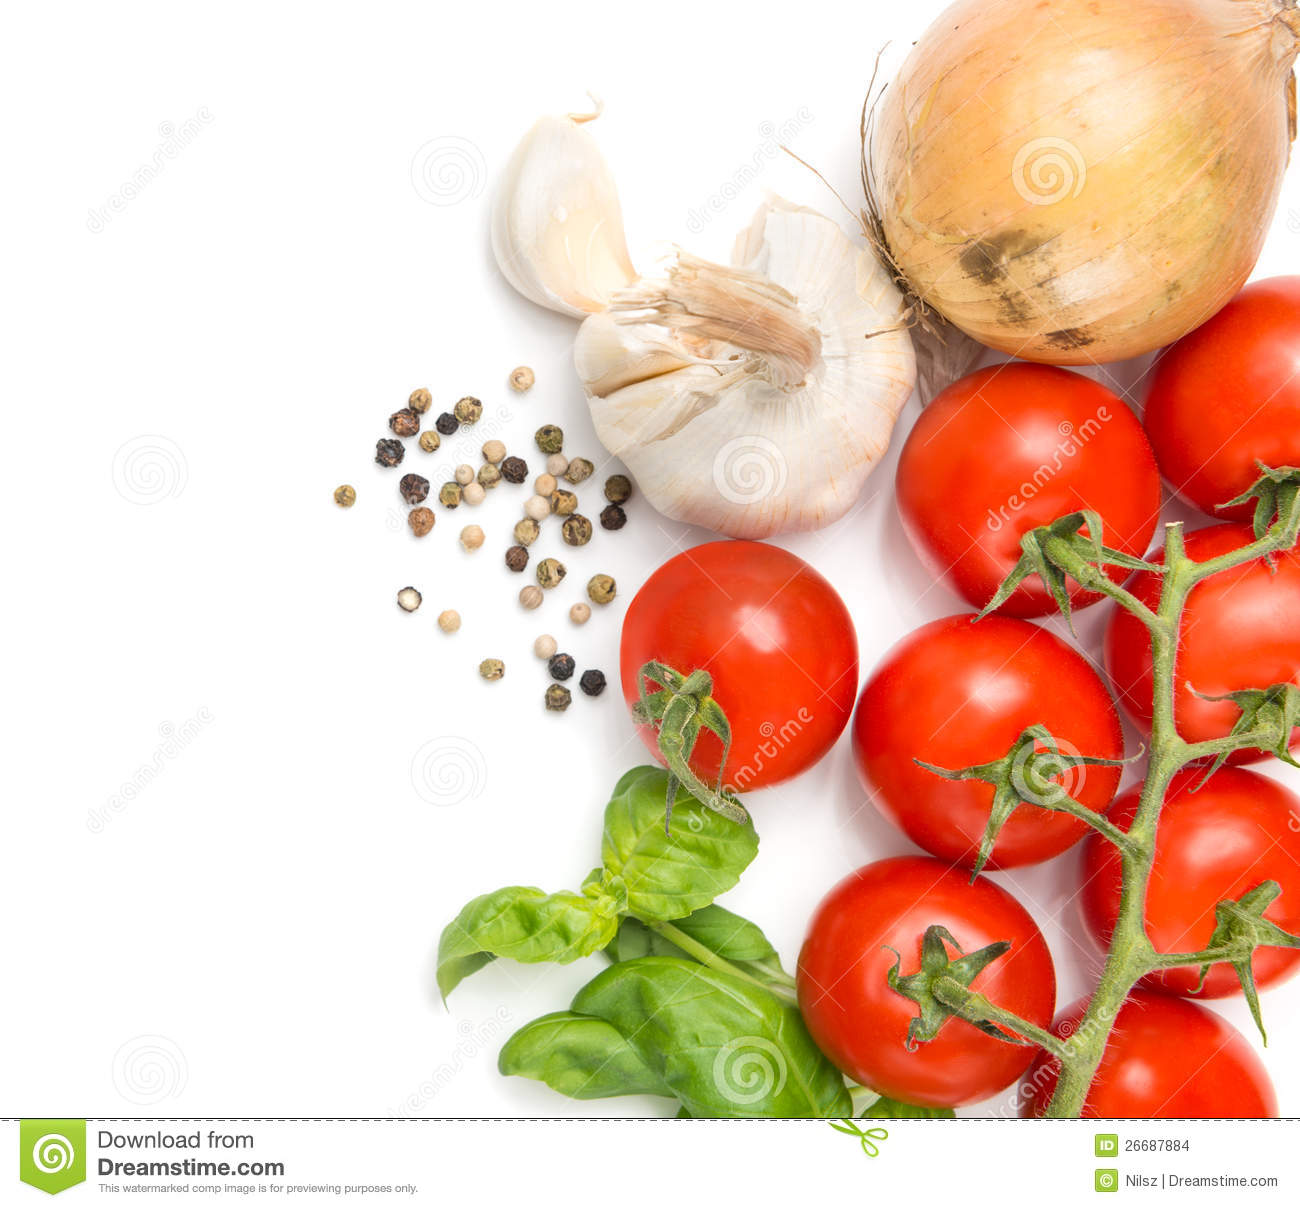 Fresh food ingredients